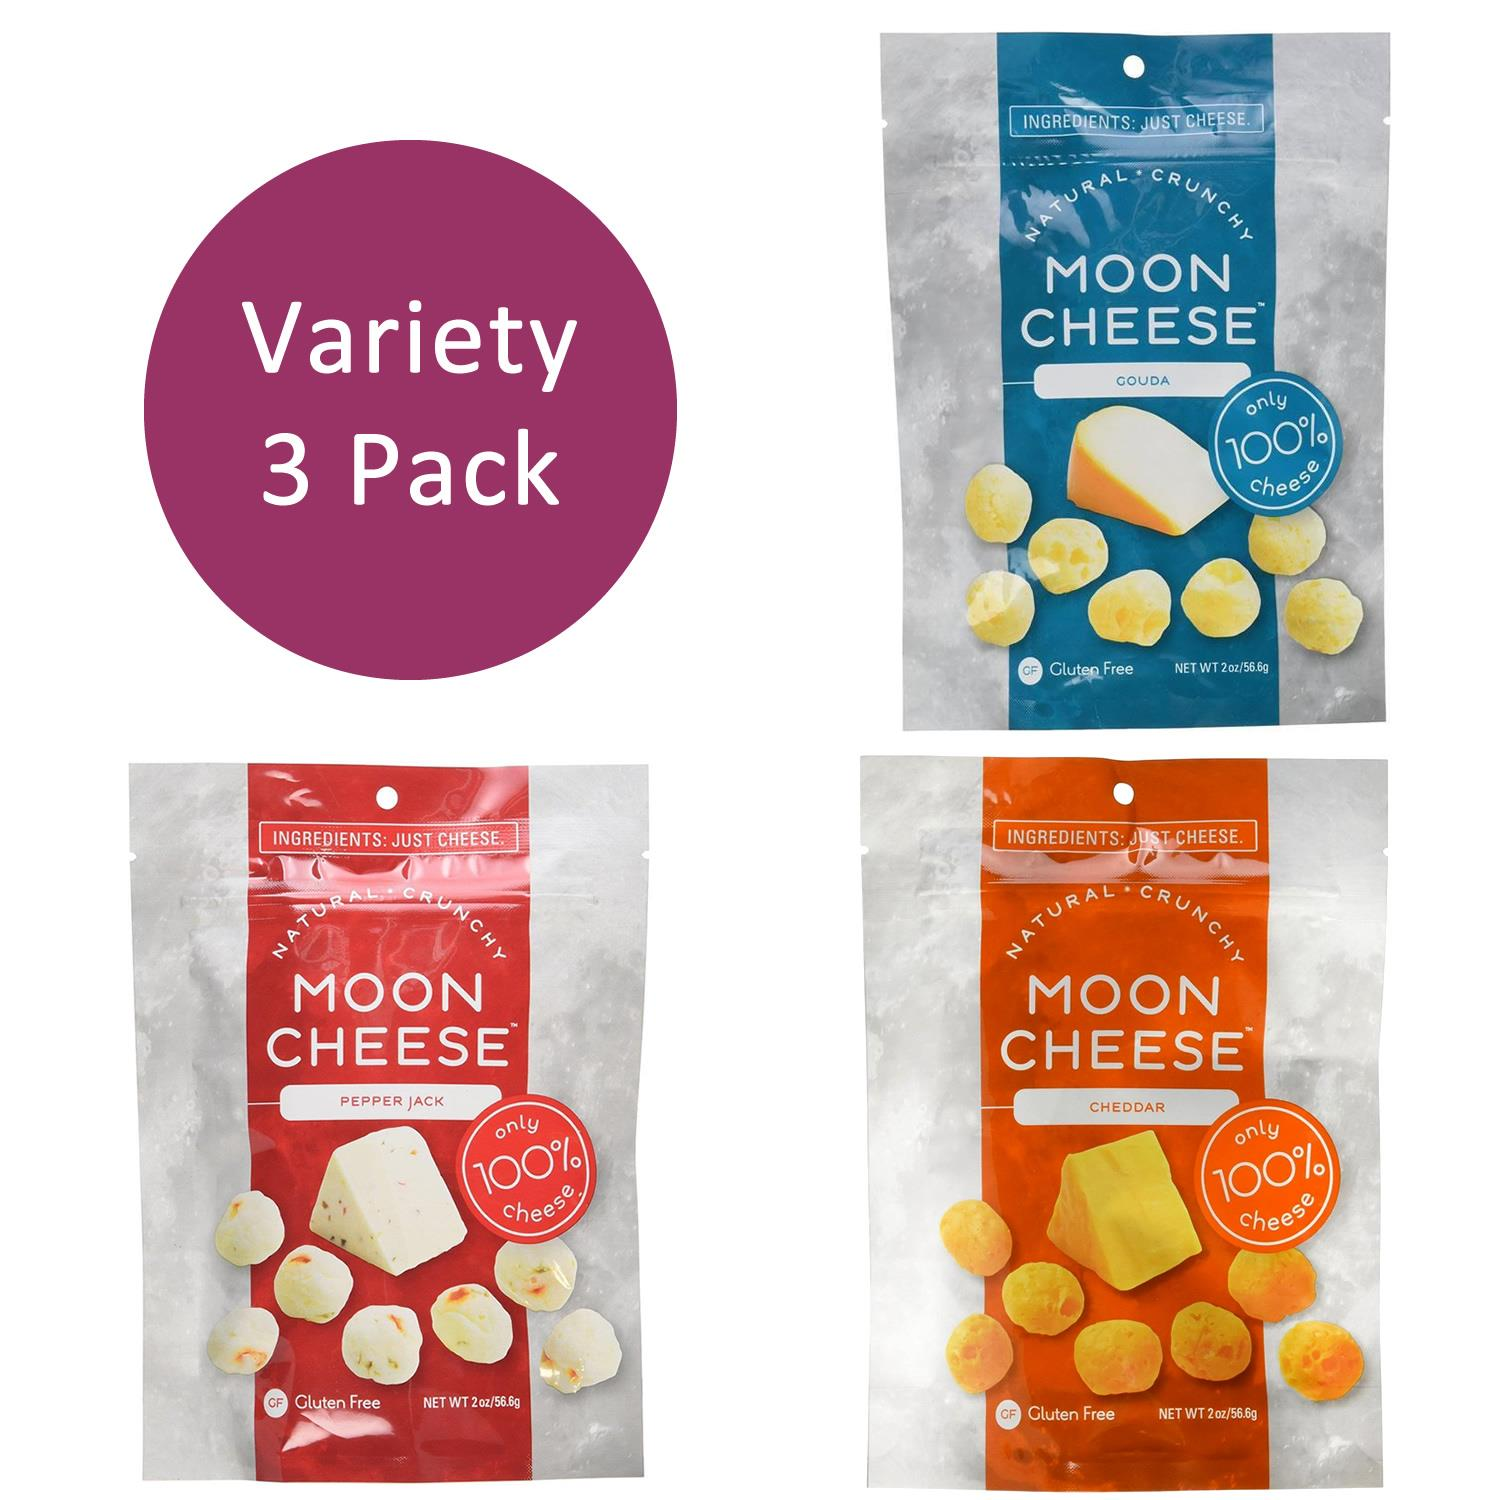 Moon Cheese Variety Snack 3PK Cheddar Gouda Pepper Jack Gluten-Free Natural Protein Calcium Food 005000050100502